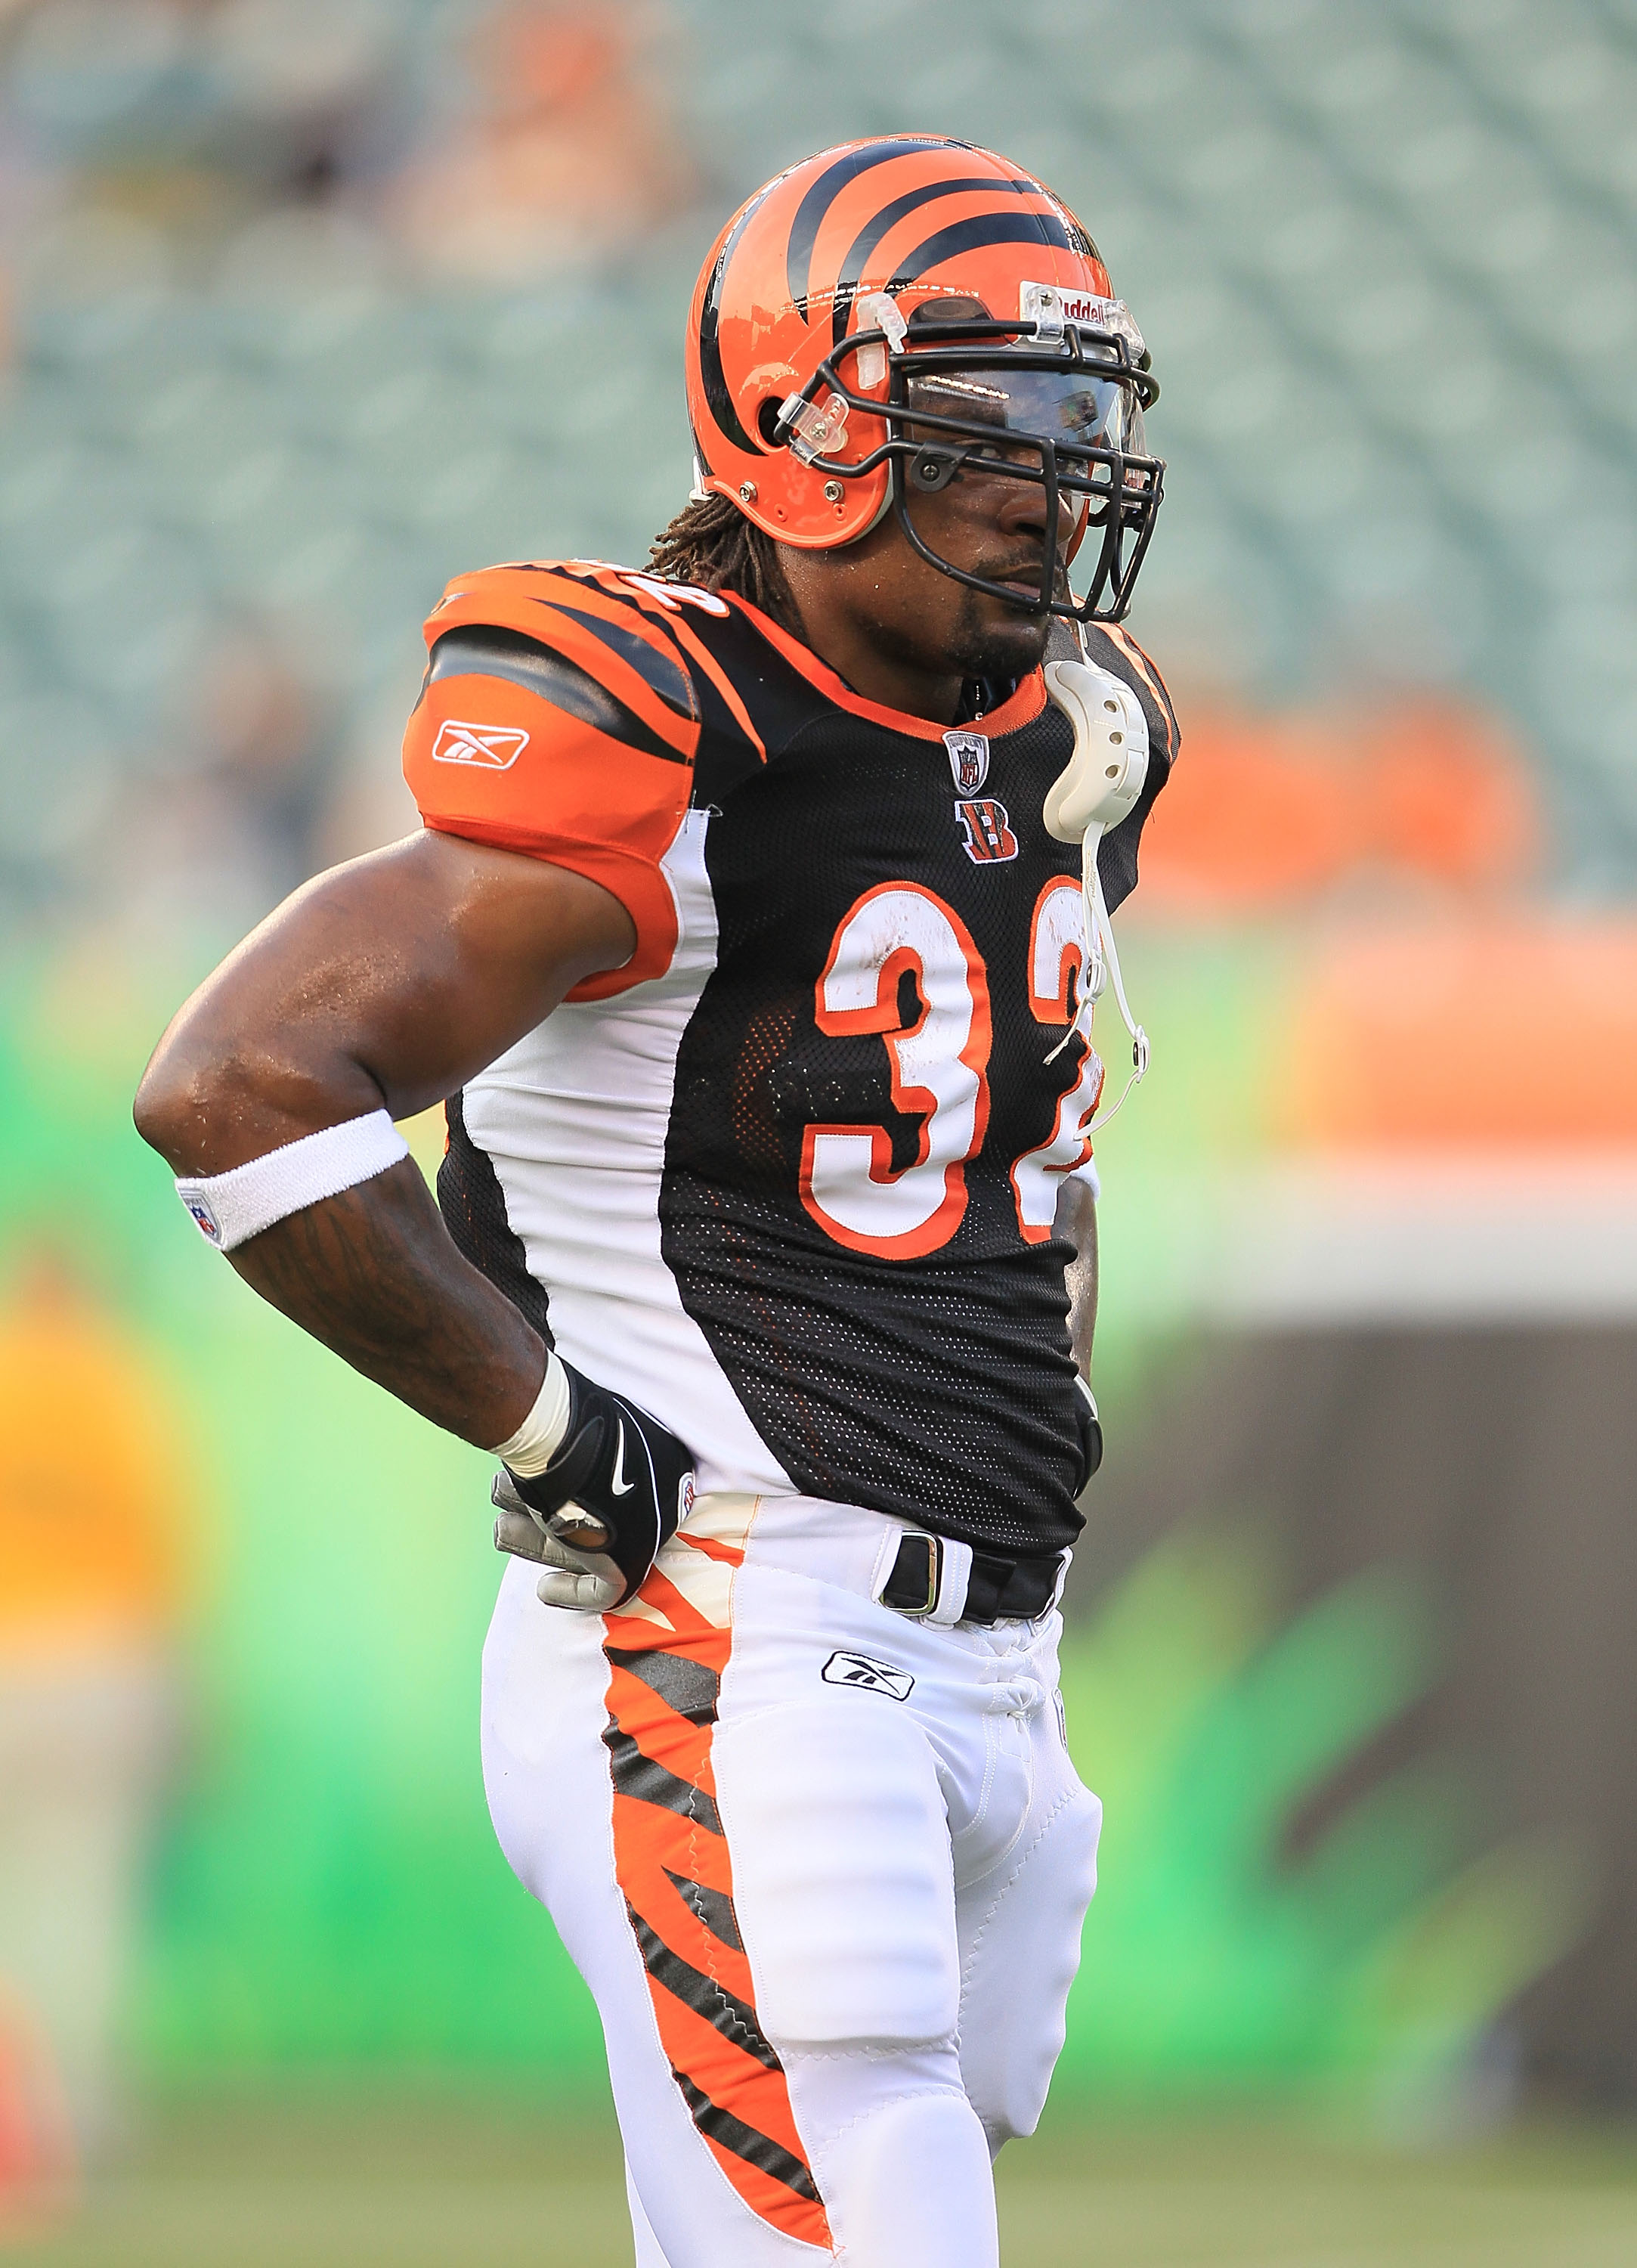 CINCINNATI - AUGUST 20:  Cedric Benson #32 of the Cincinnati Bengals is pictured before the NFL preseason game against the Philadelphia Eagles at Paul Brown Stadium on August 20, 2010 in Cincinnati, Ohio.  (Photo by Andy Lyons/Getty Images)